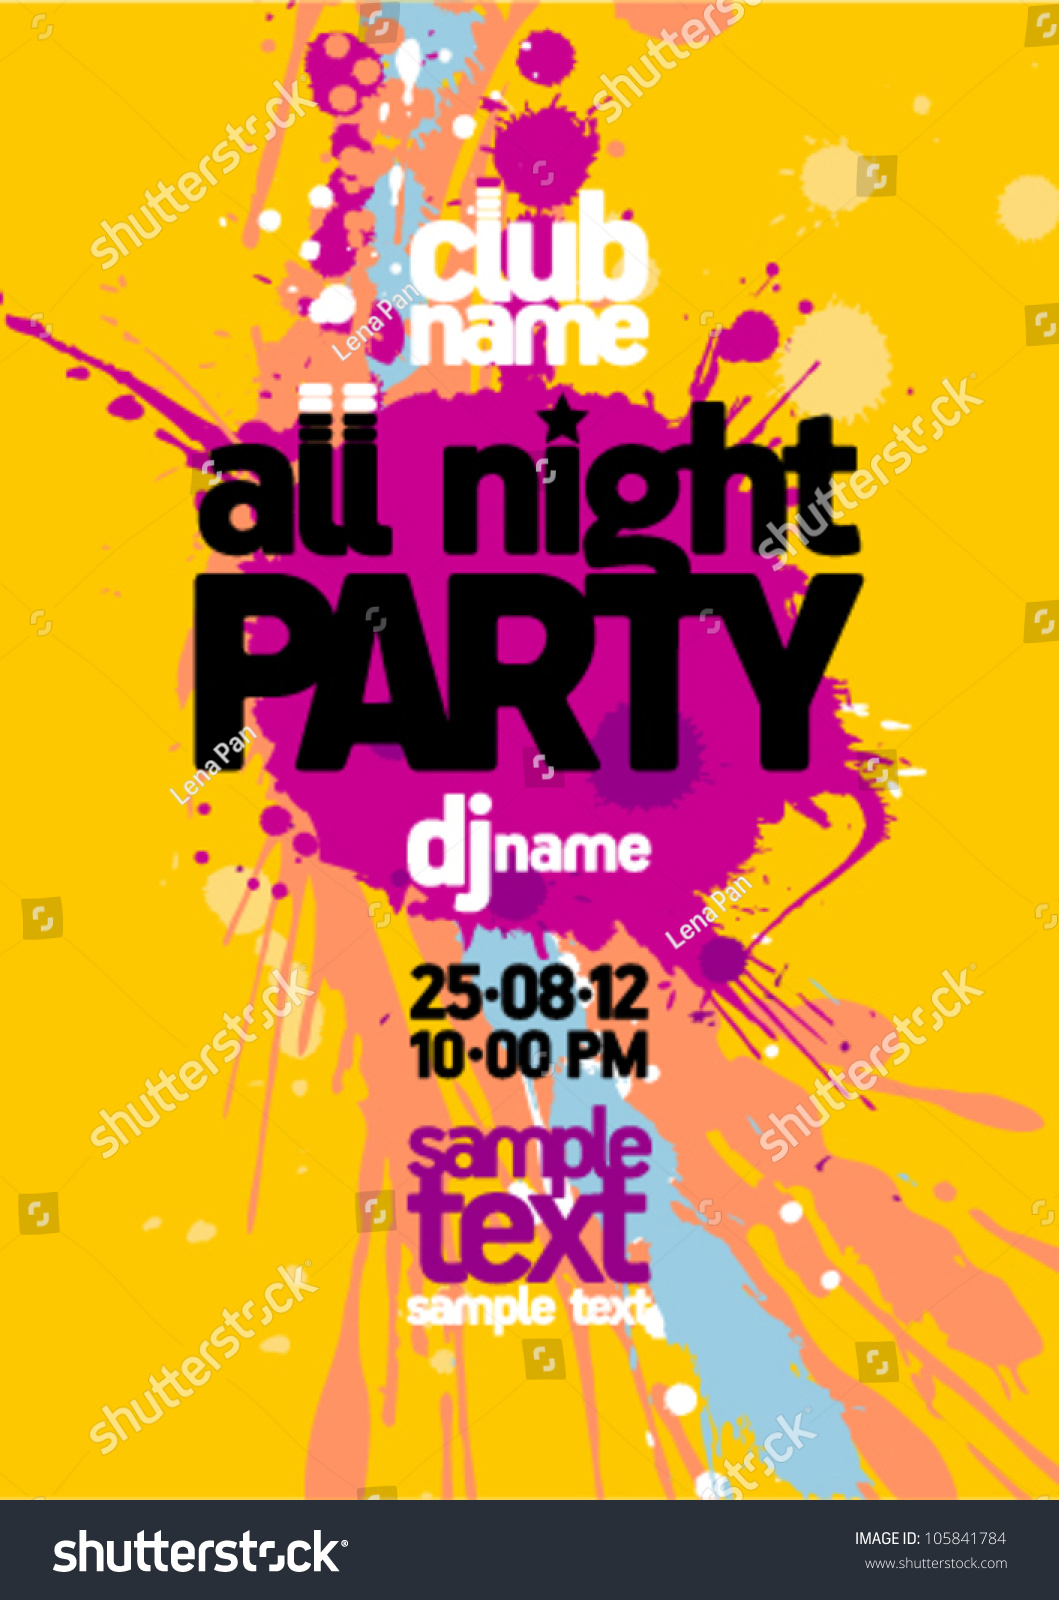 All Night Party Design Mock Up Stock Vector 105841784 - Shutterstock